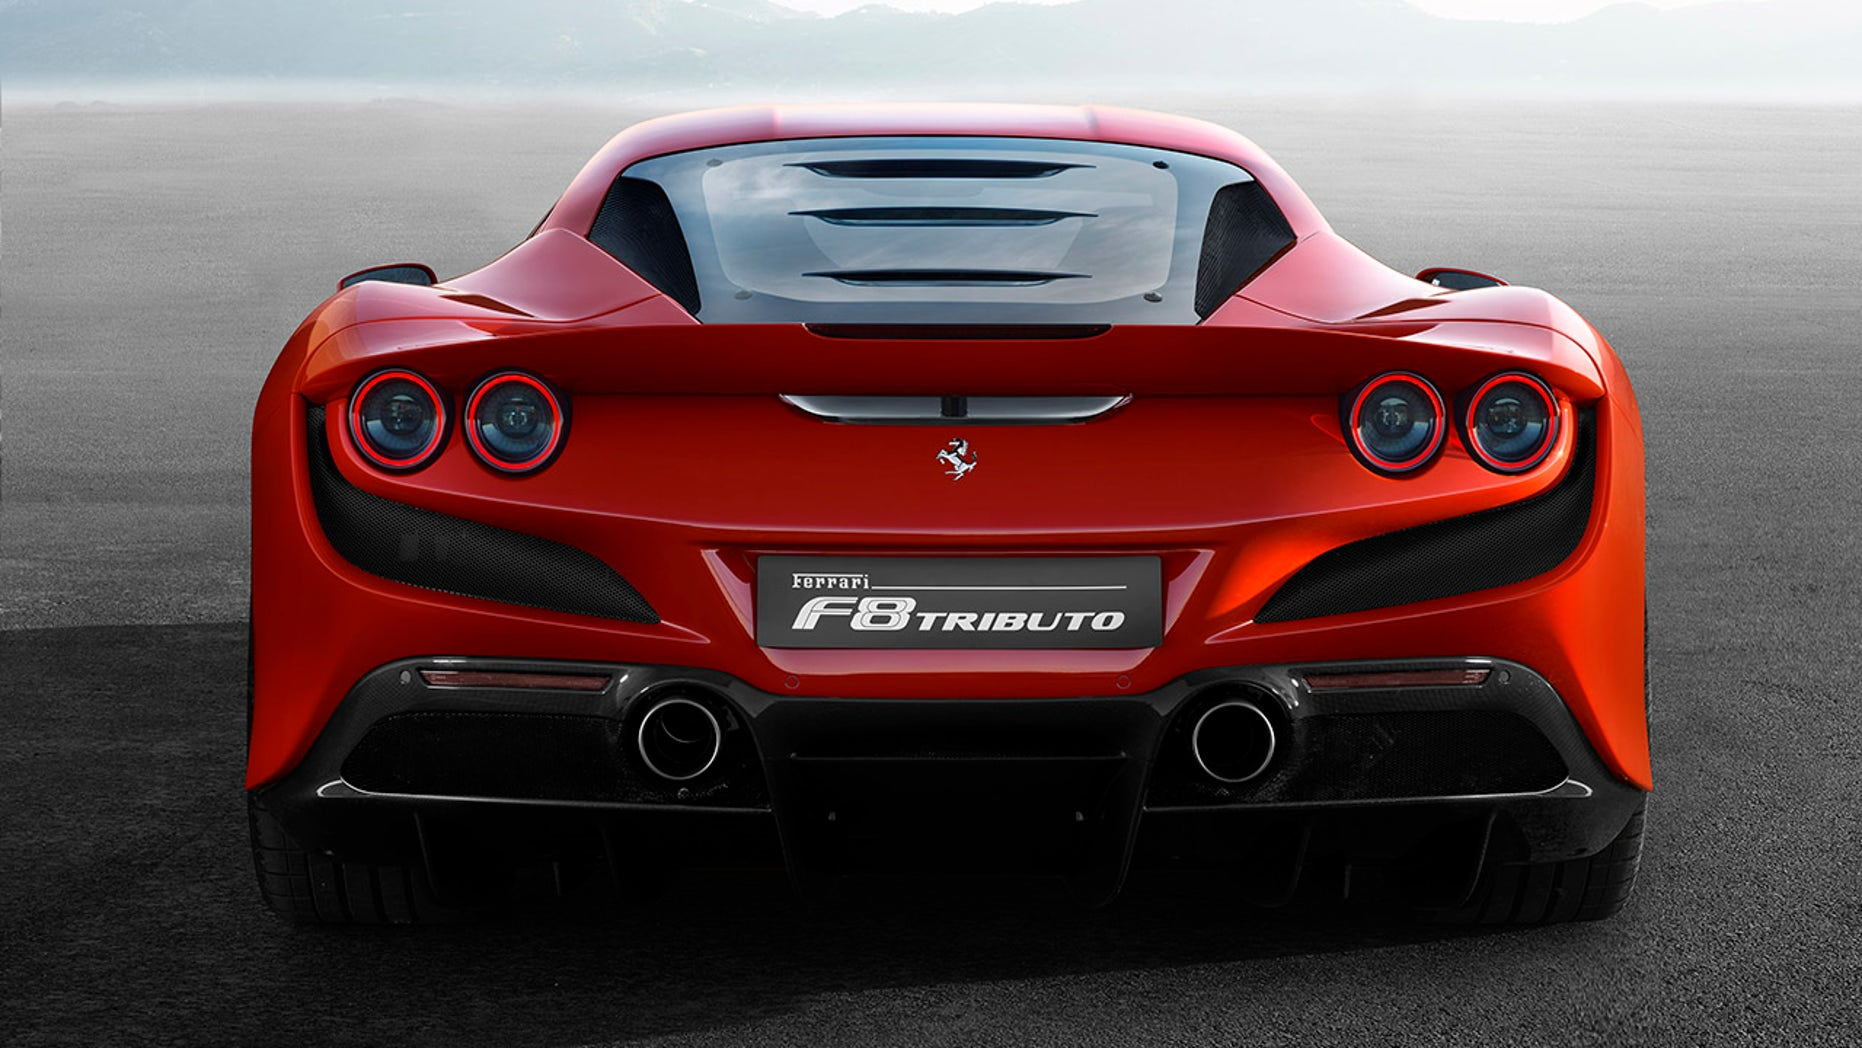 Ferrari F8 Tributo rear view